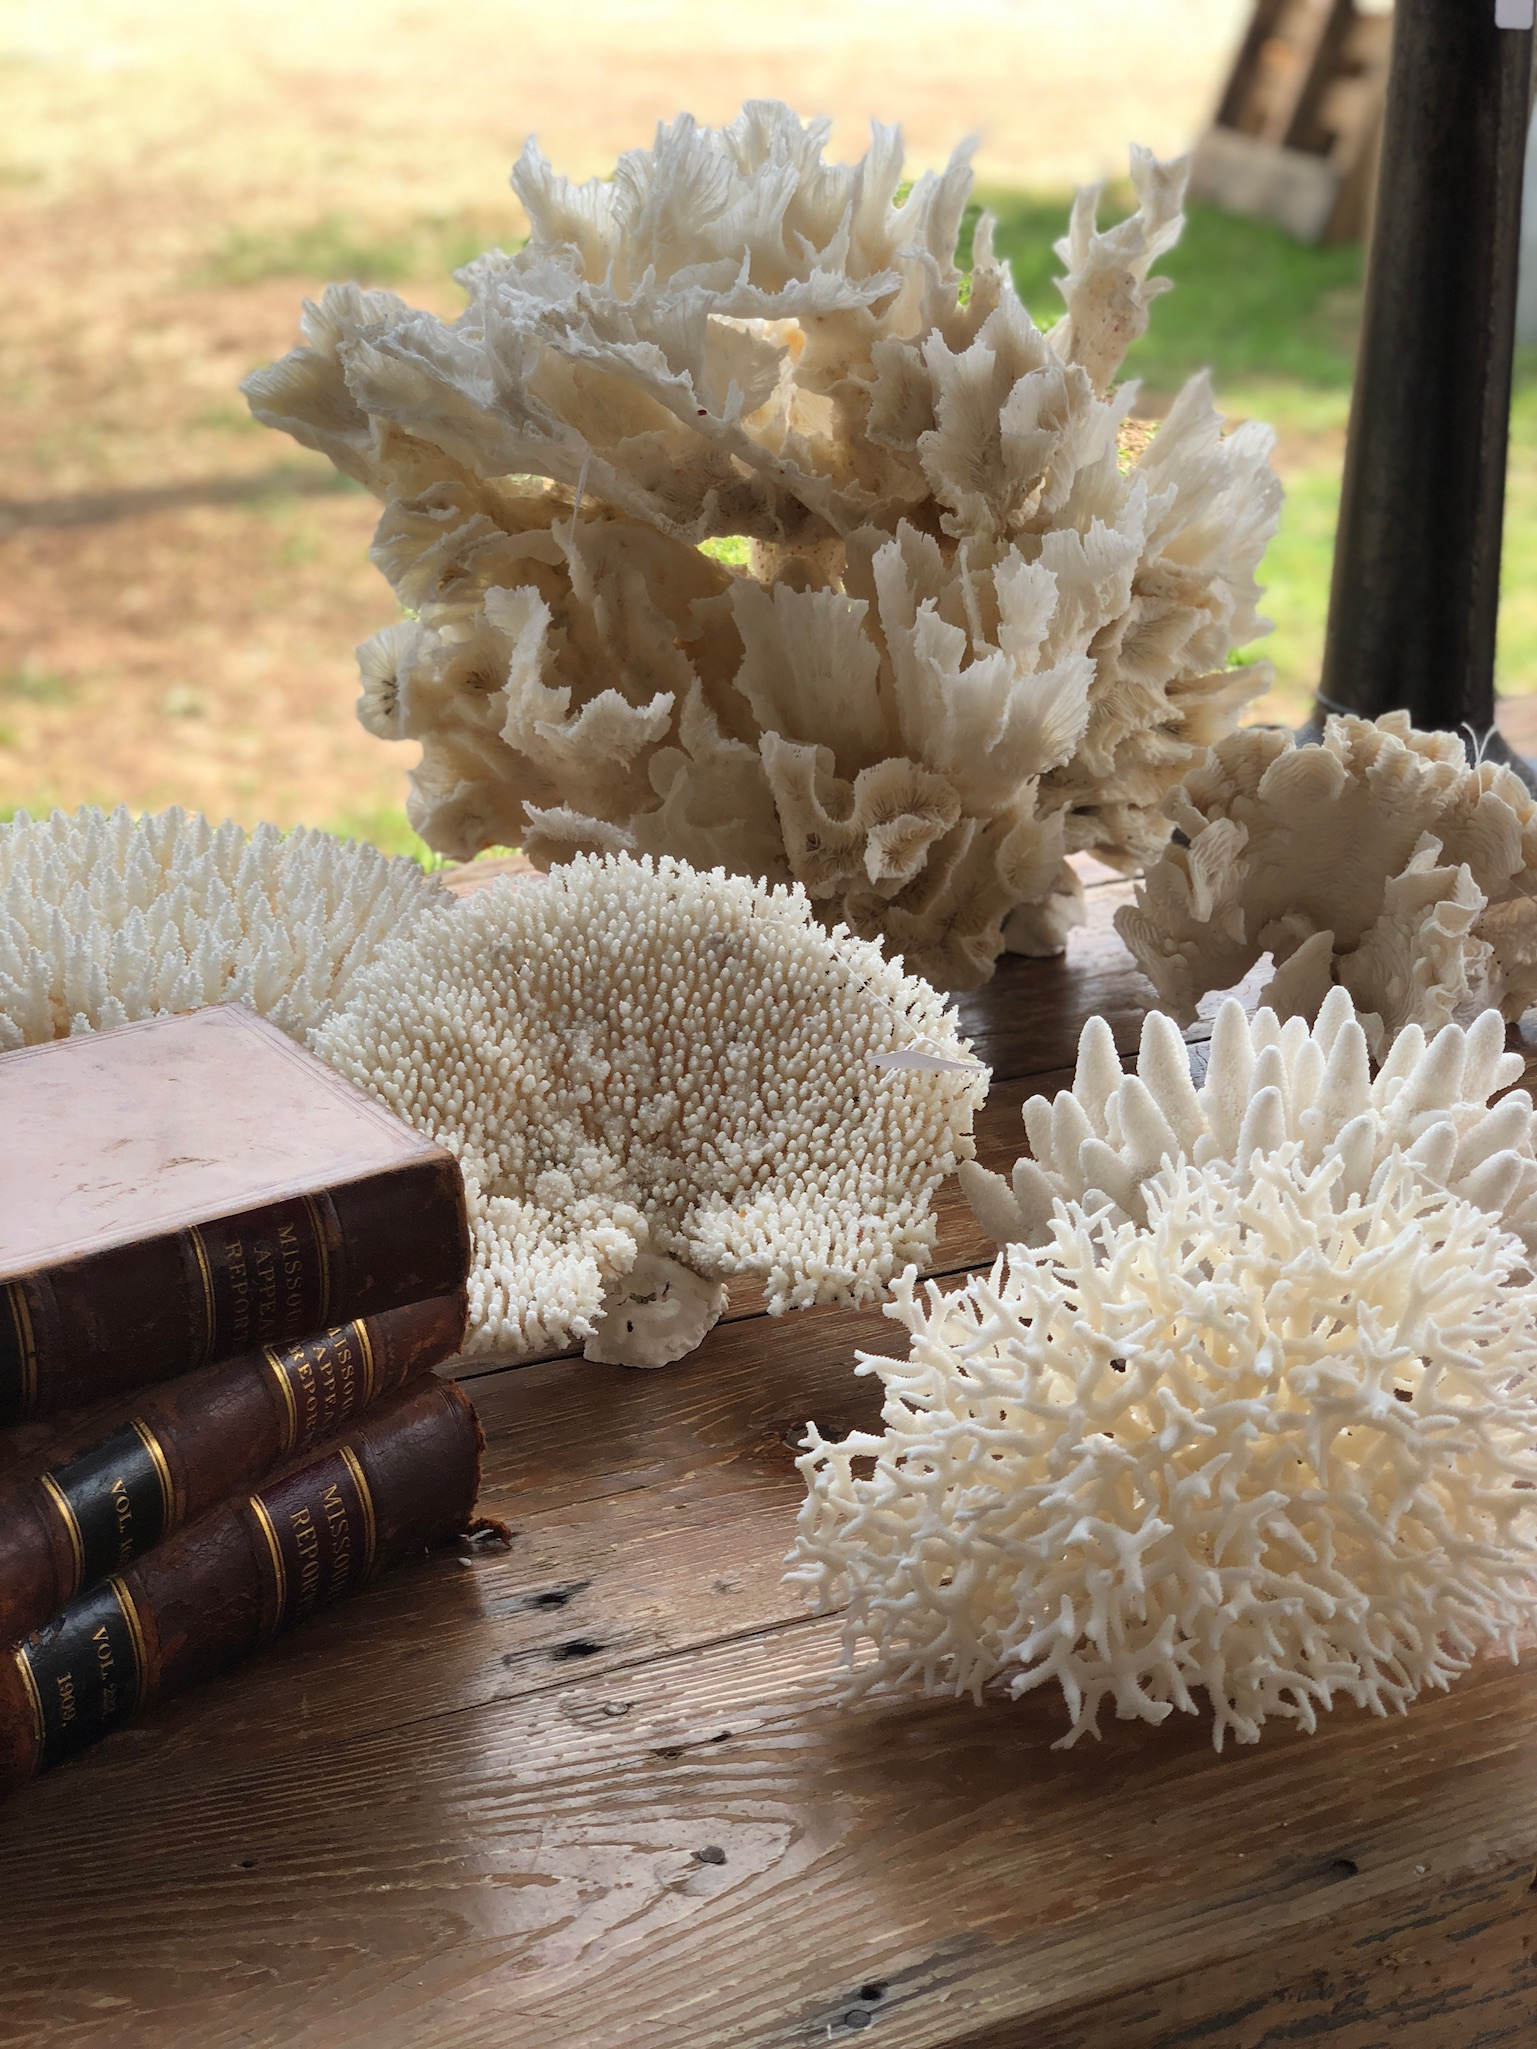 Gorgeous Corals and Leather Bound Books